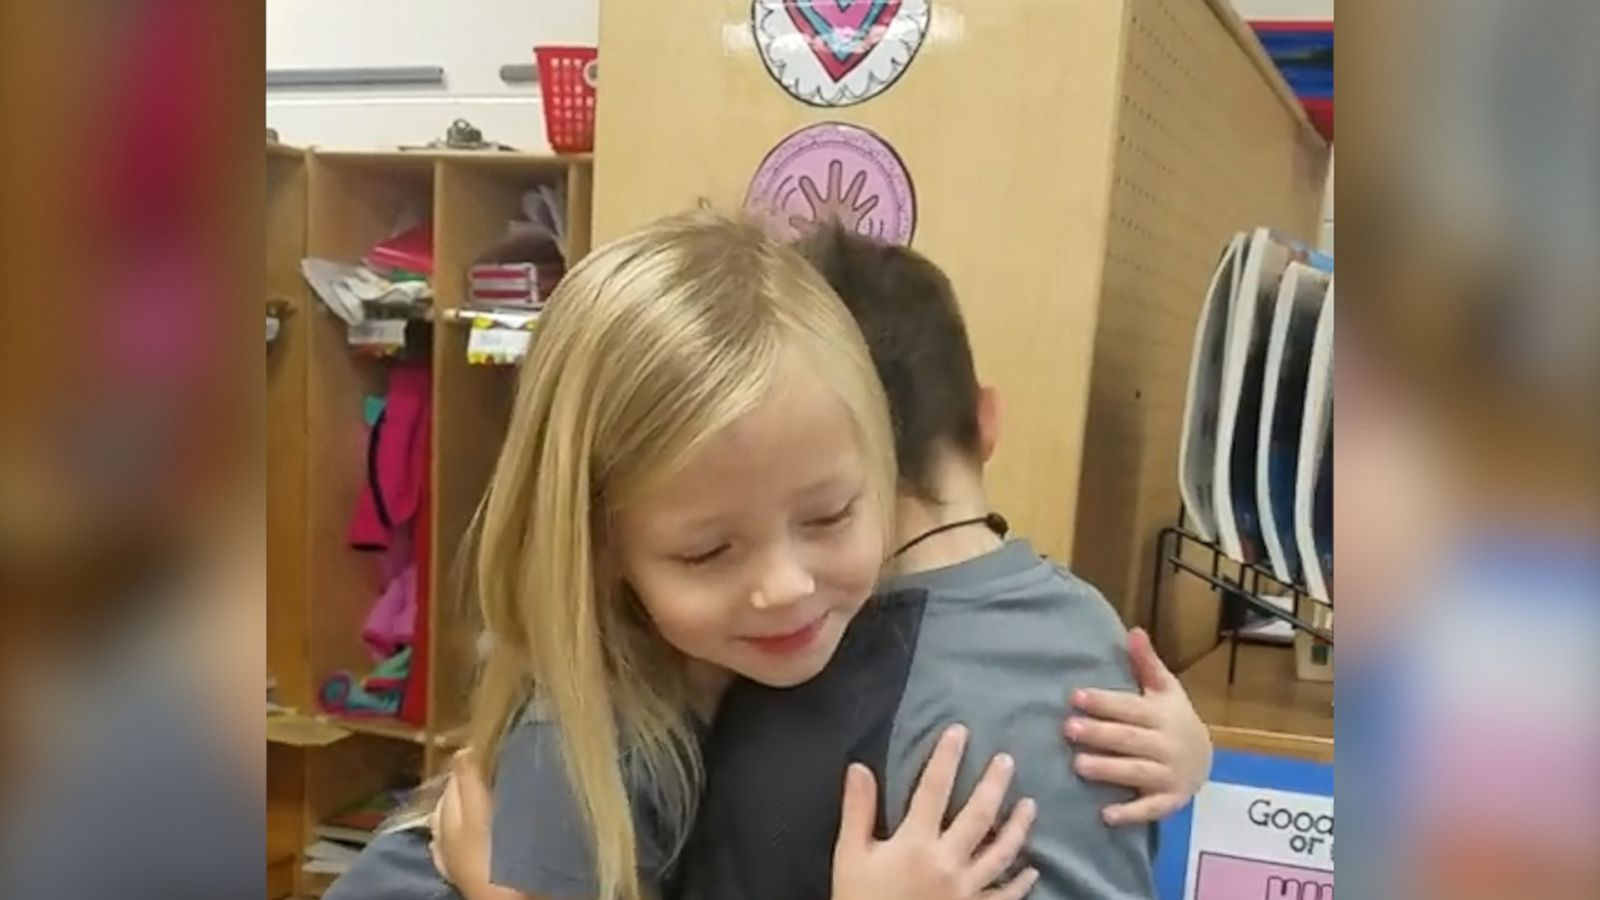 abcnews.go.com - Genevieve Shaw Brown - Let's all agree to be as kind as these kindergartners are each day